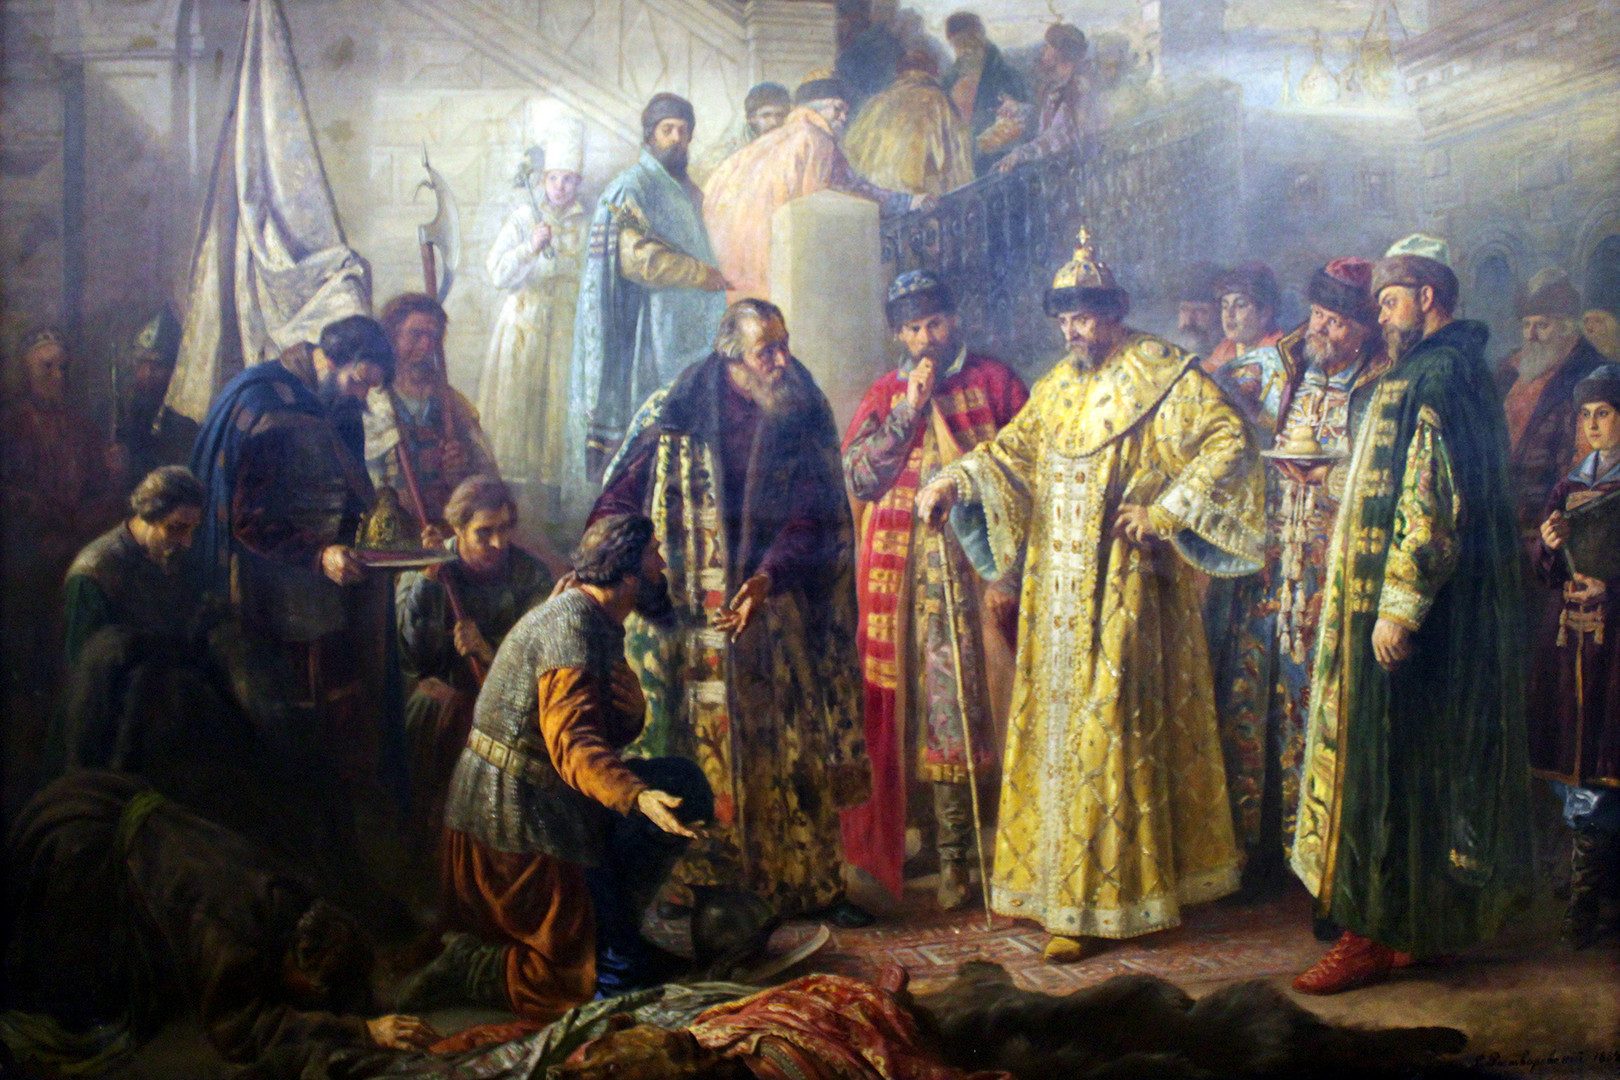 Ivan the Terrible, obra de S. Rostvorovski (1858-1888)